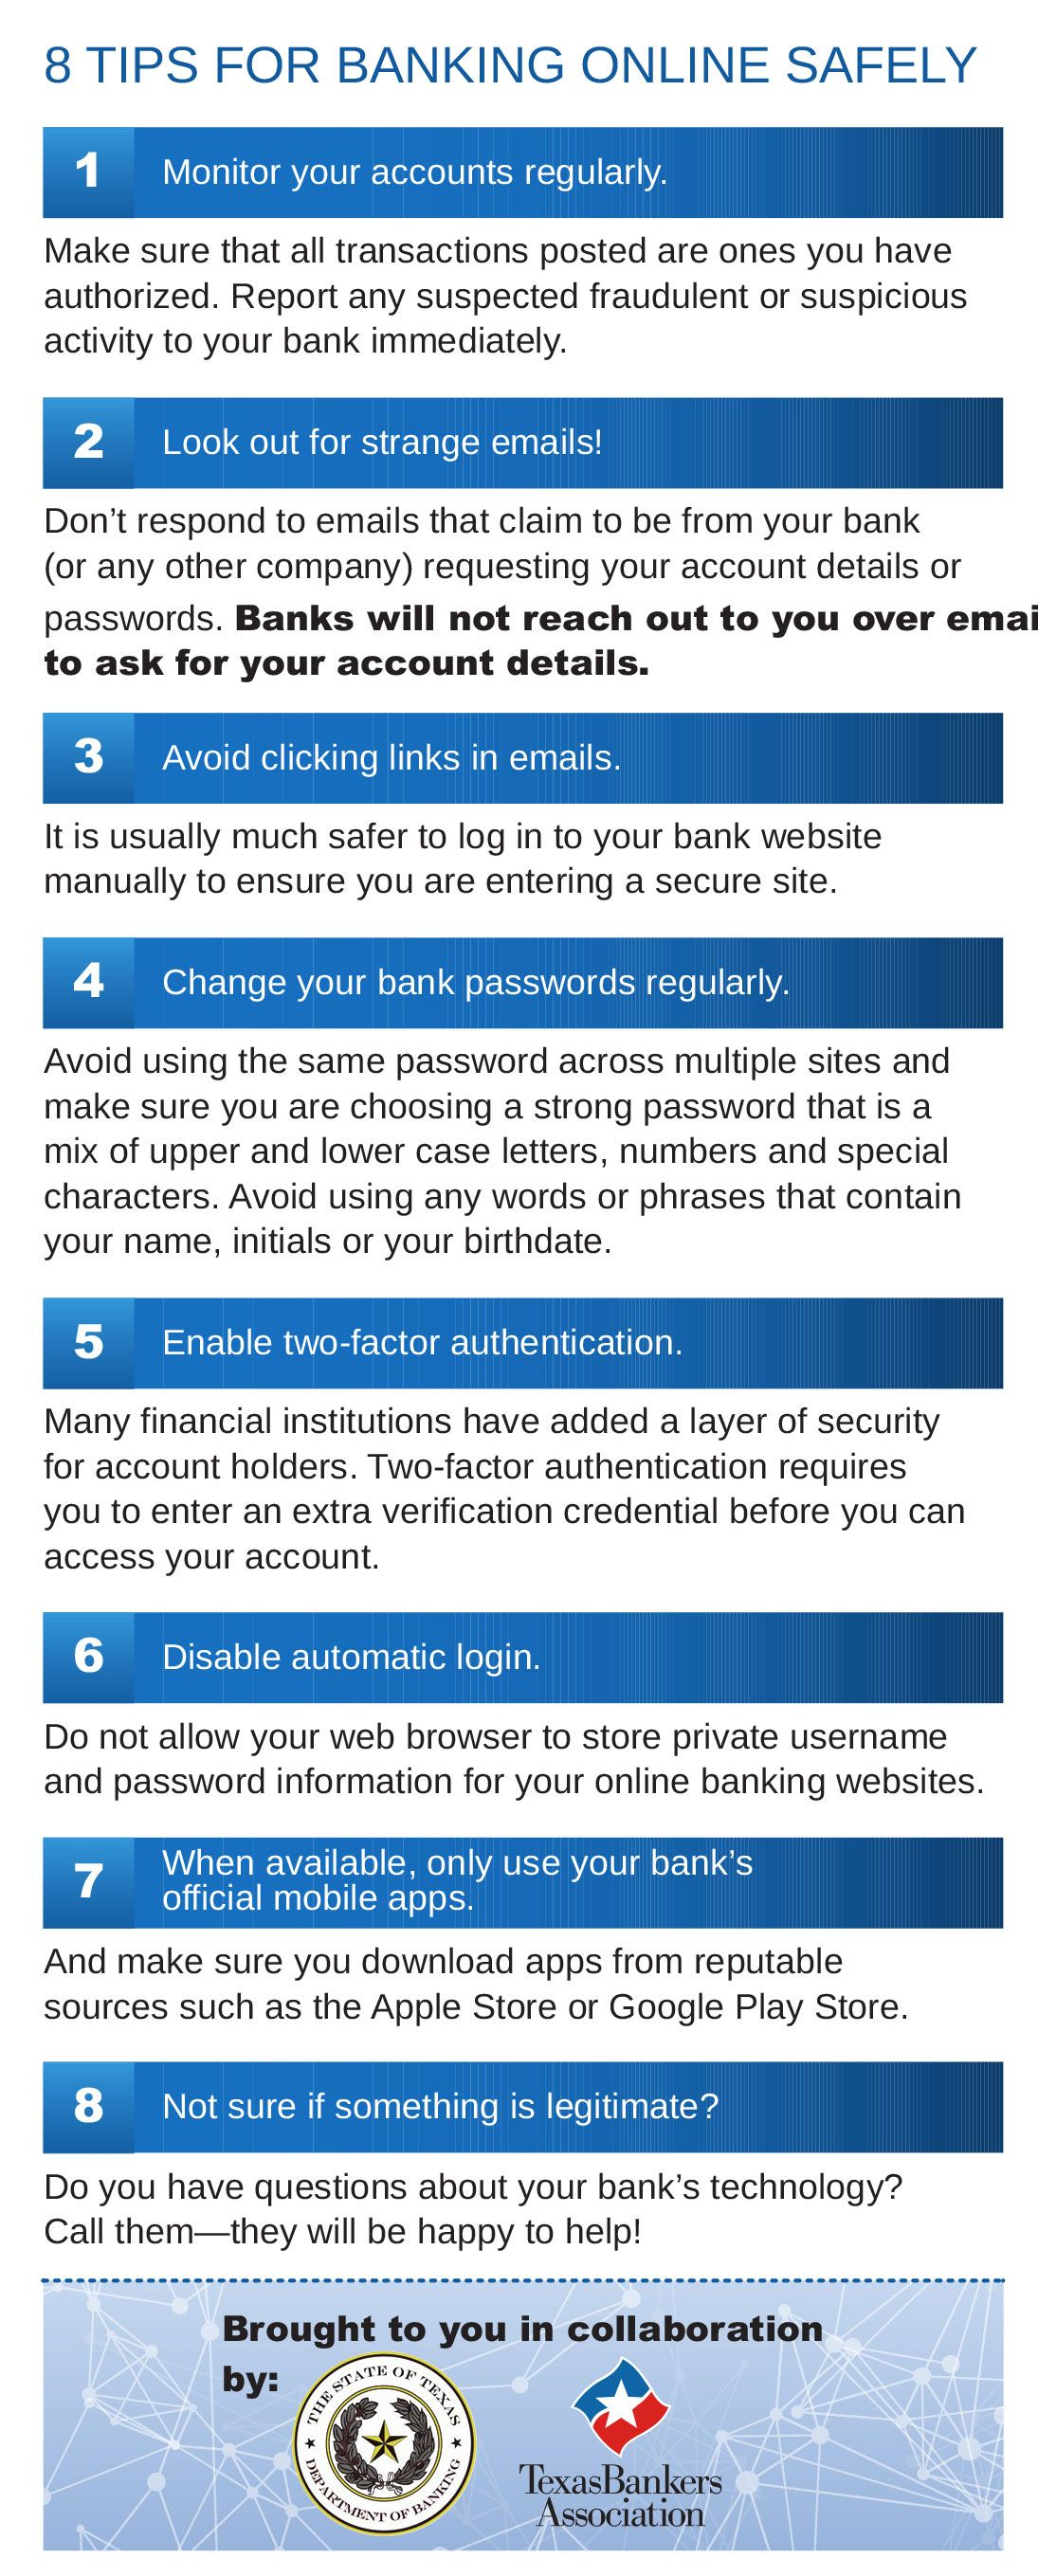 8 tips for banking online safely